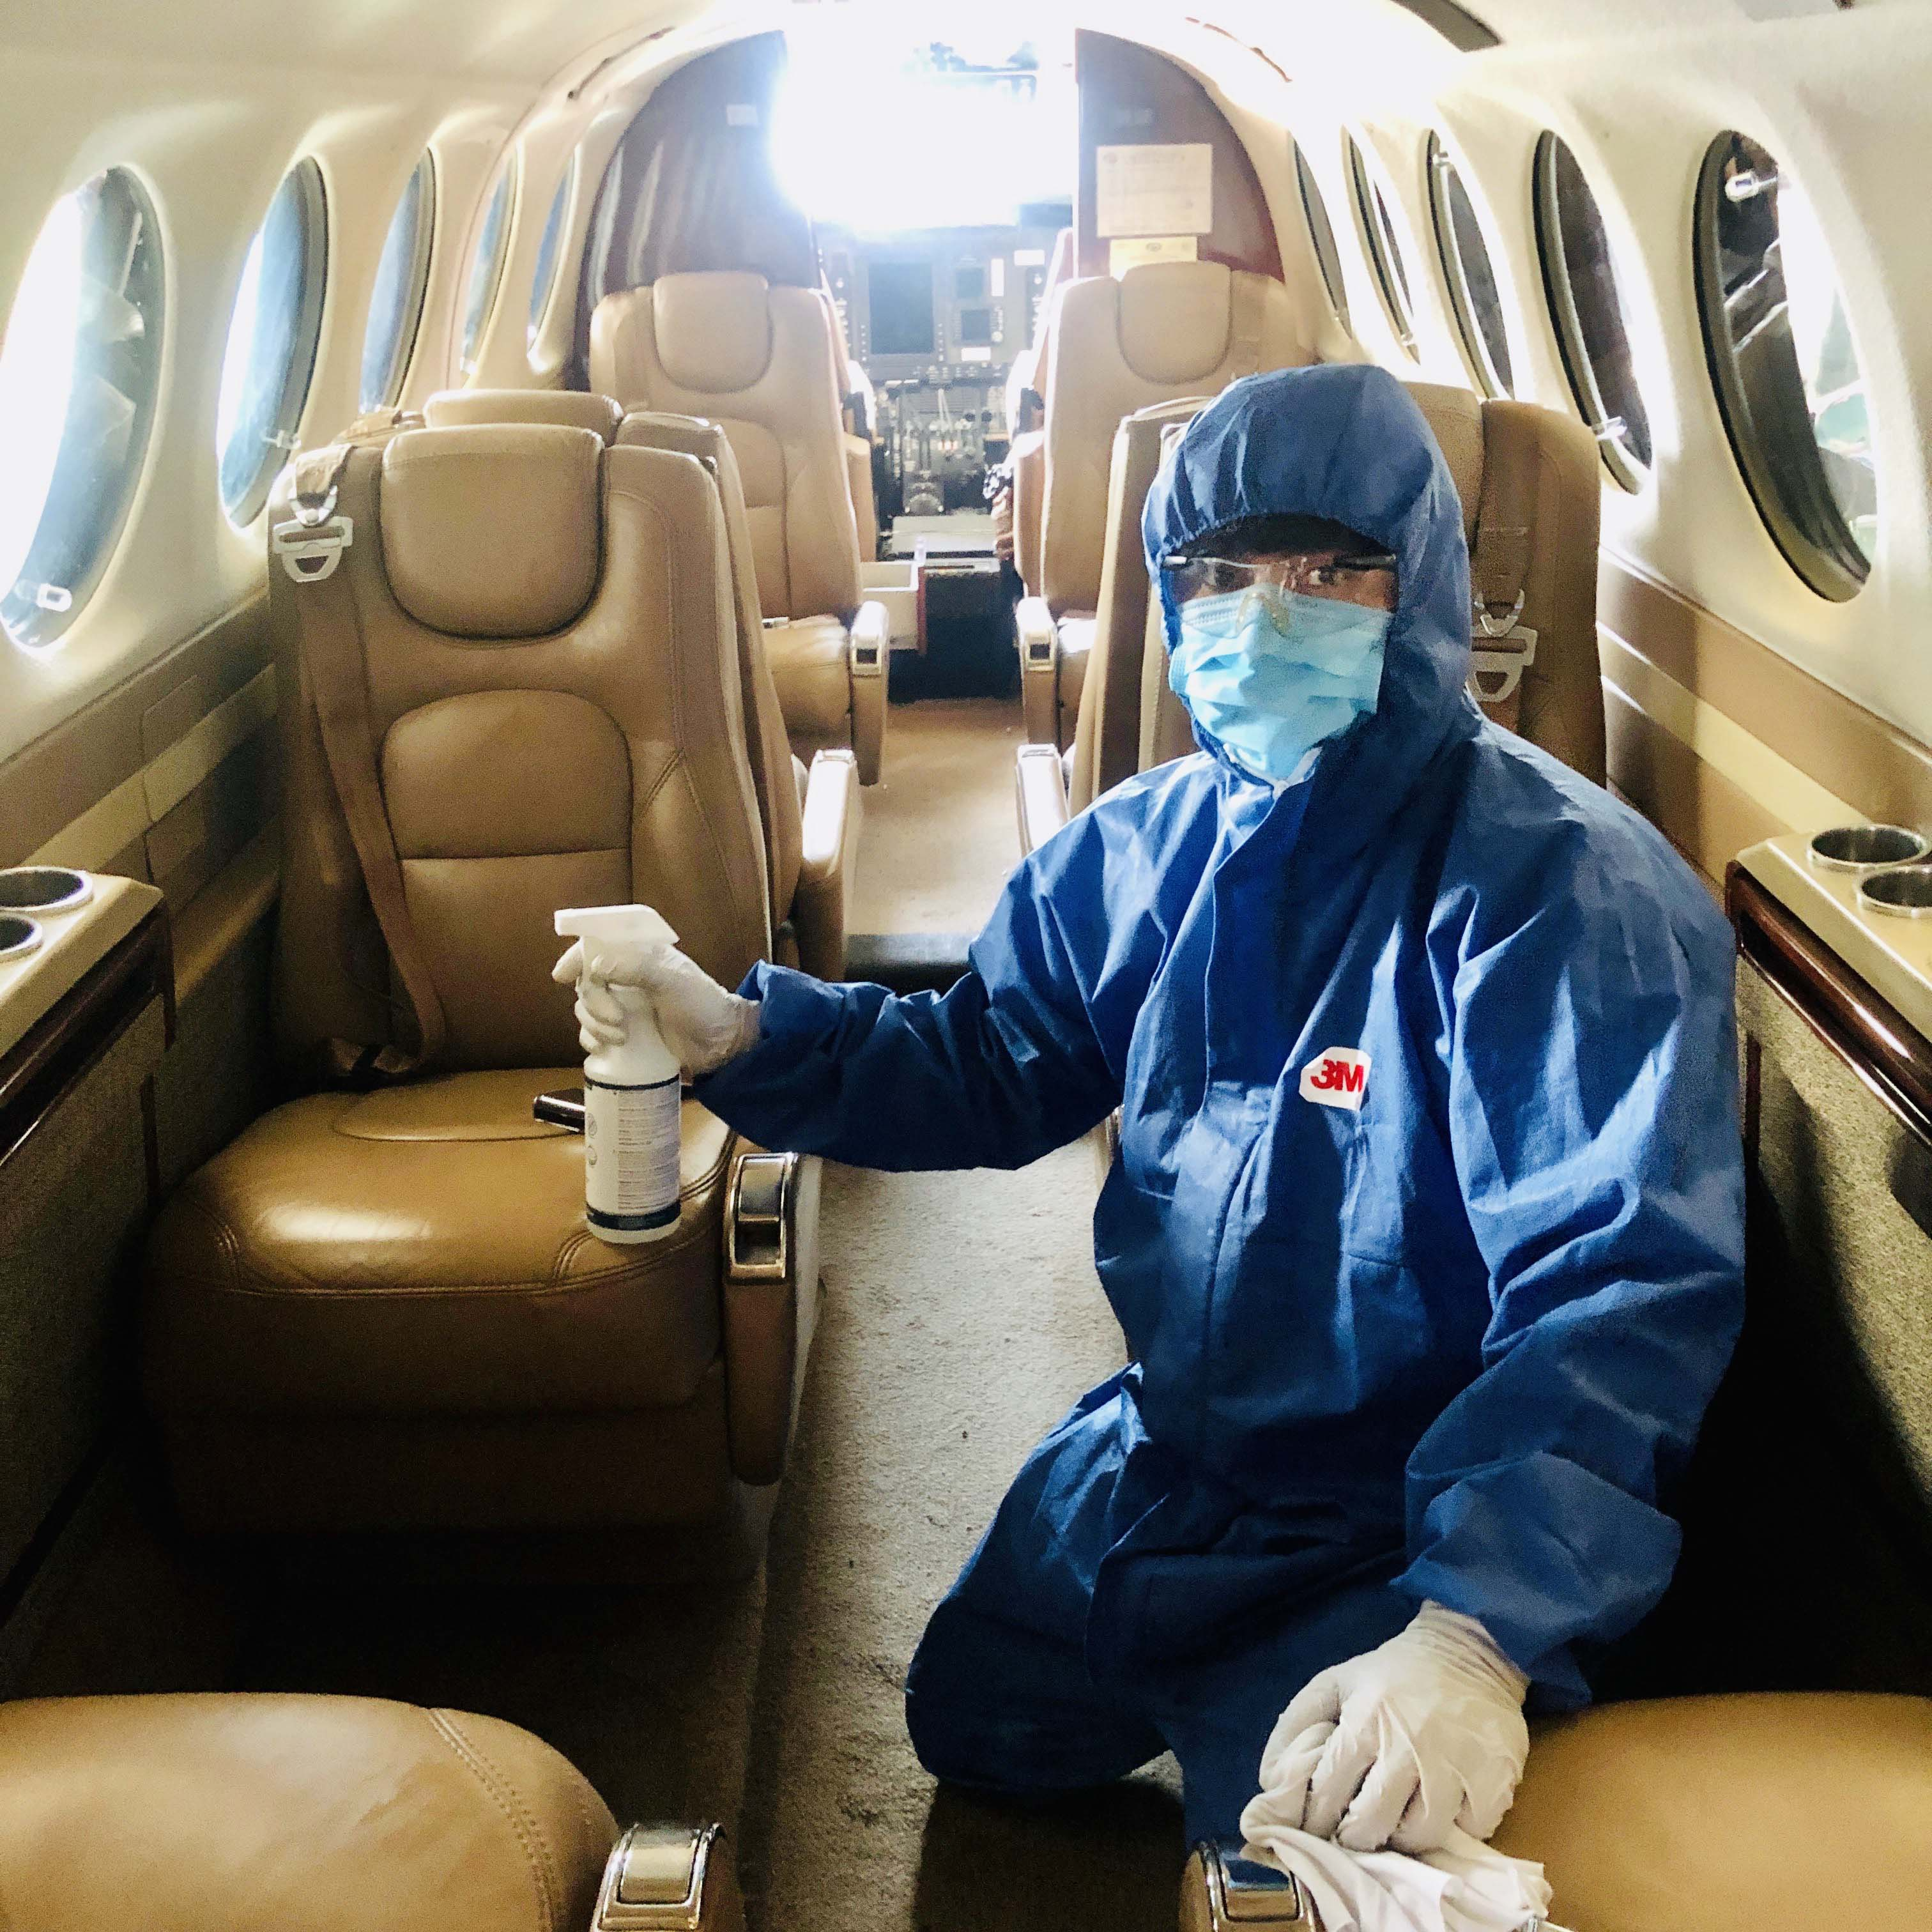 Aircraft disinfection is one of the safety protocols in place at INAEC; the company procured disinfectants for its aircraft, hangars and equipment as news about COVID-19 started to spread early this year